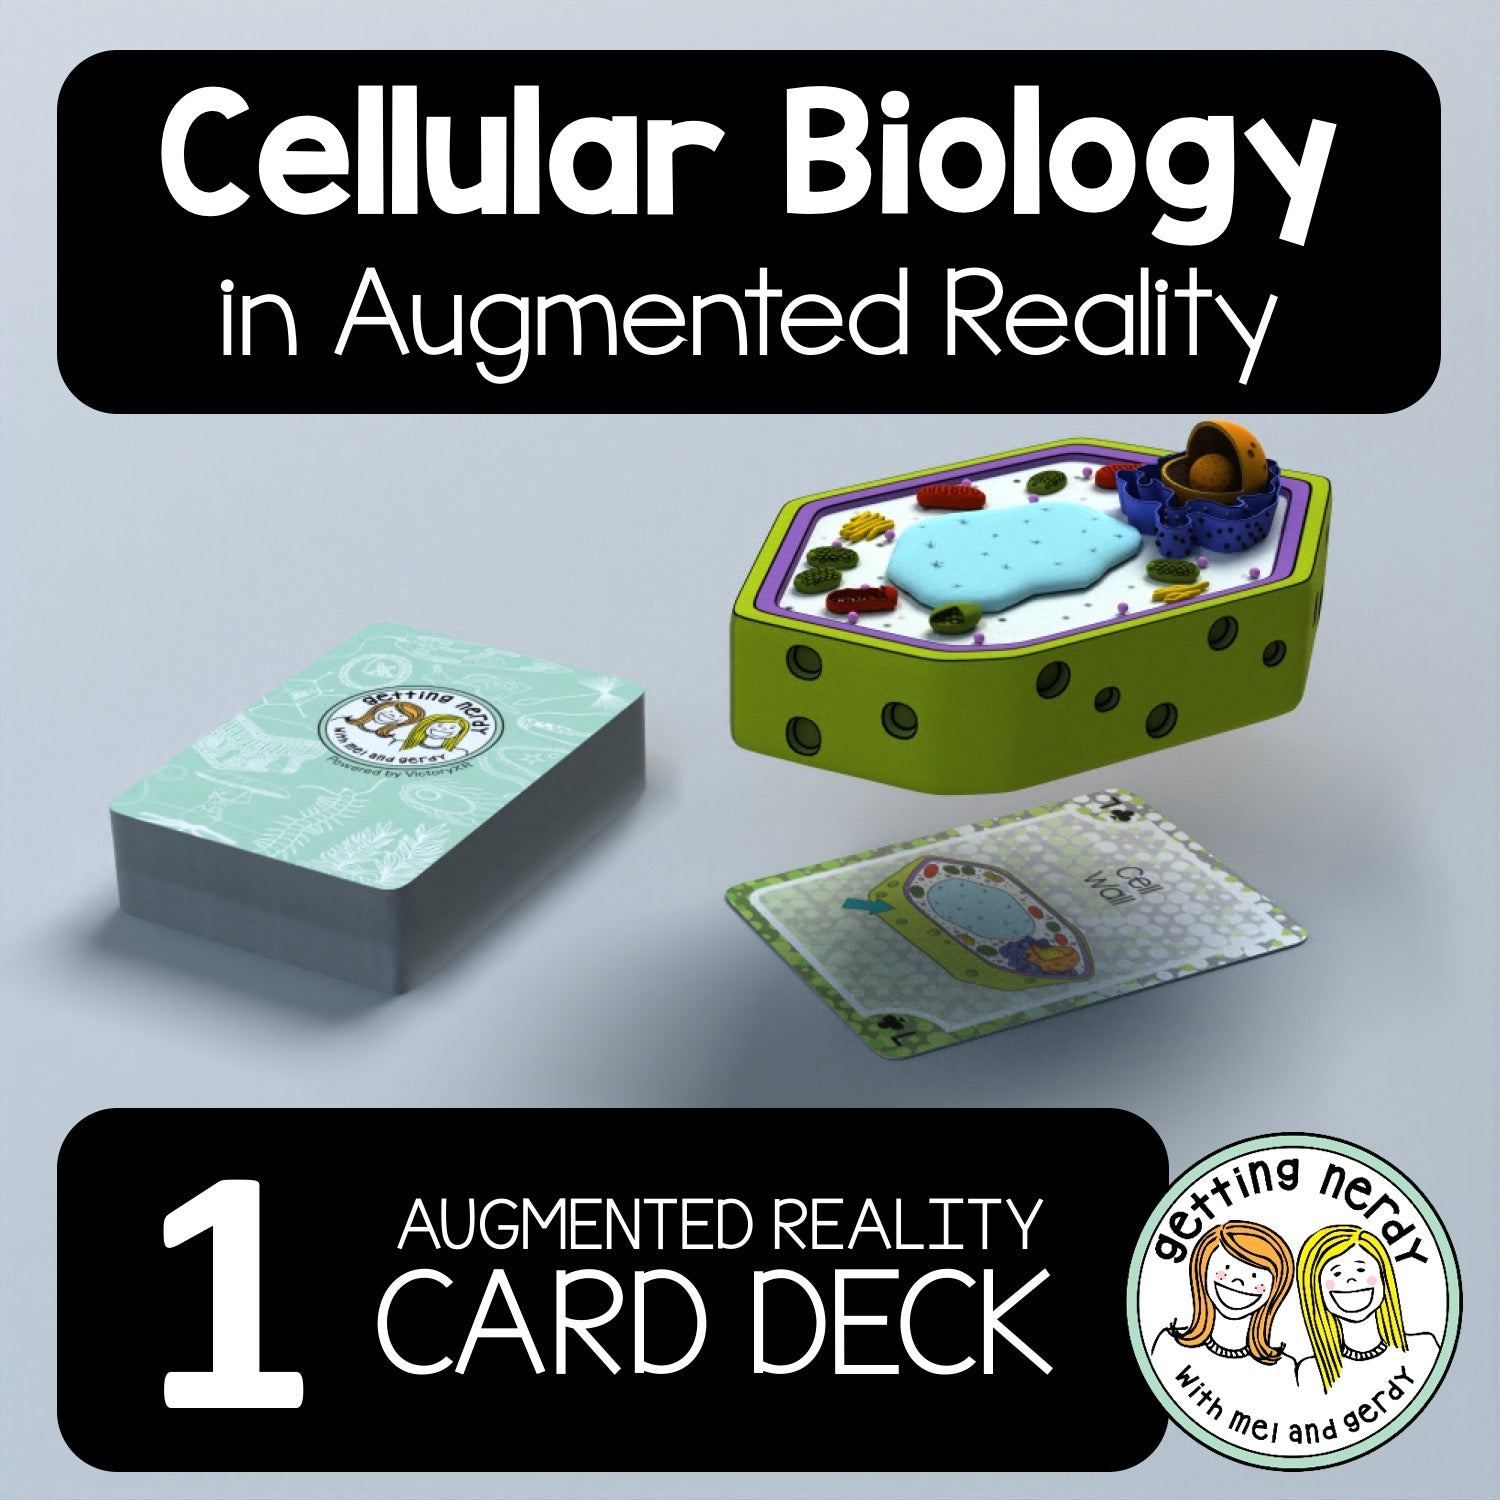 'Getting Nerdy' Cellular Biology Augmented Reality Card Deck